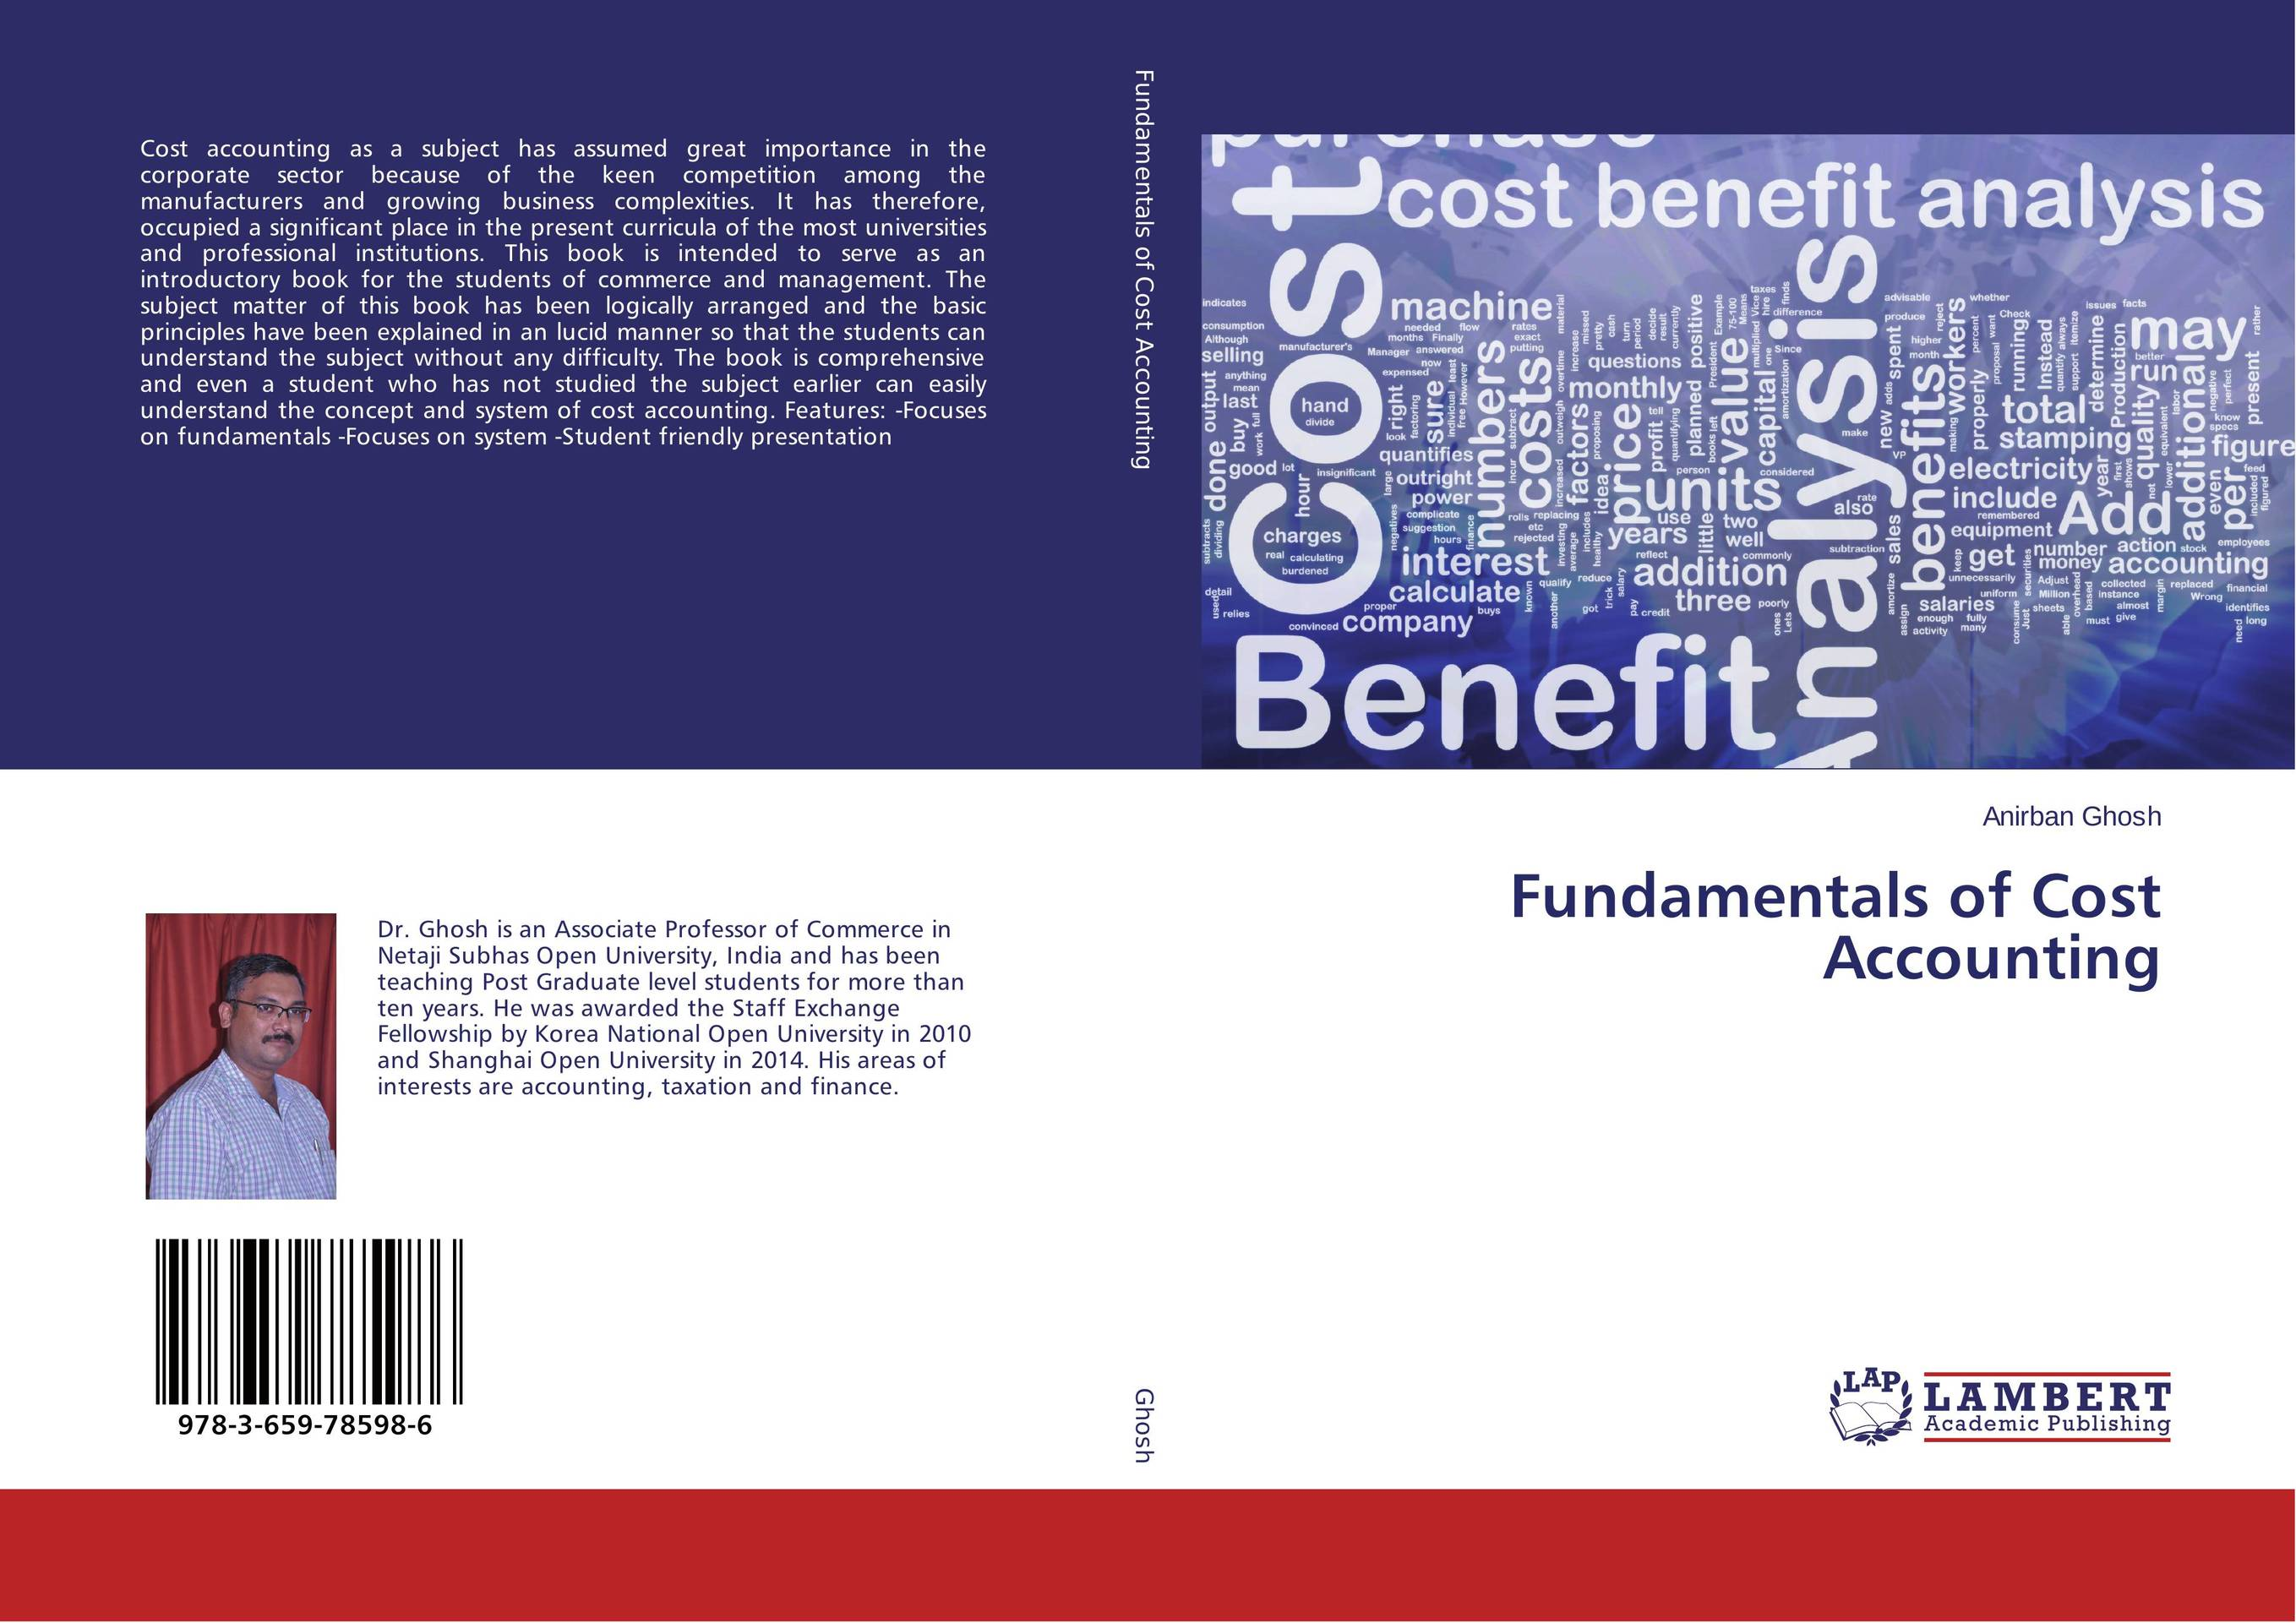 Fundamentals of Cost Accounting business fundamentals